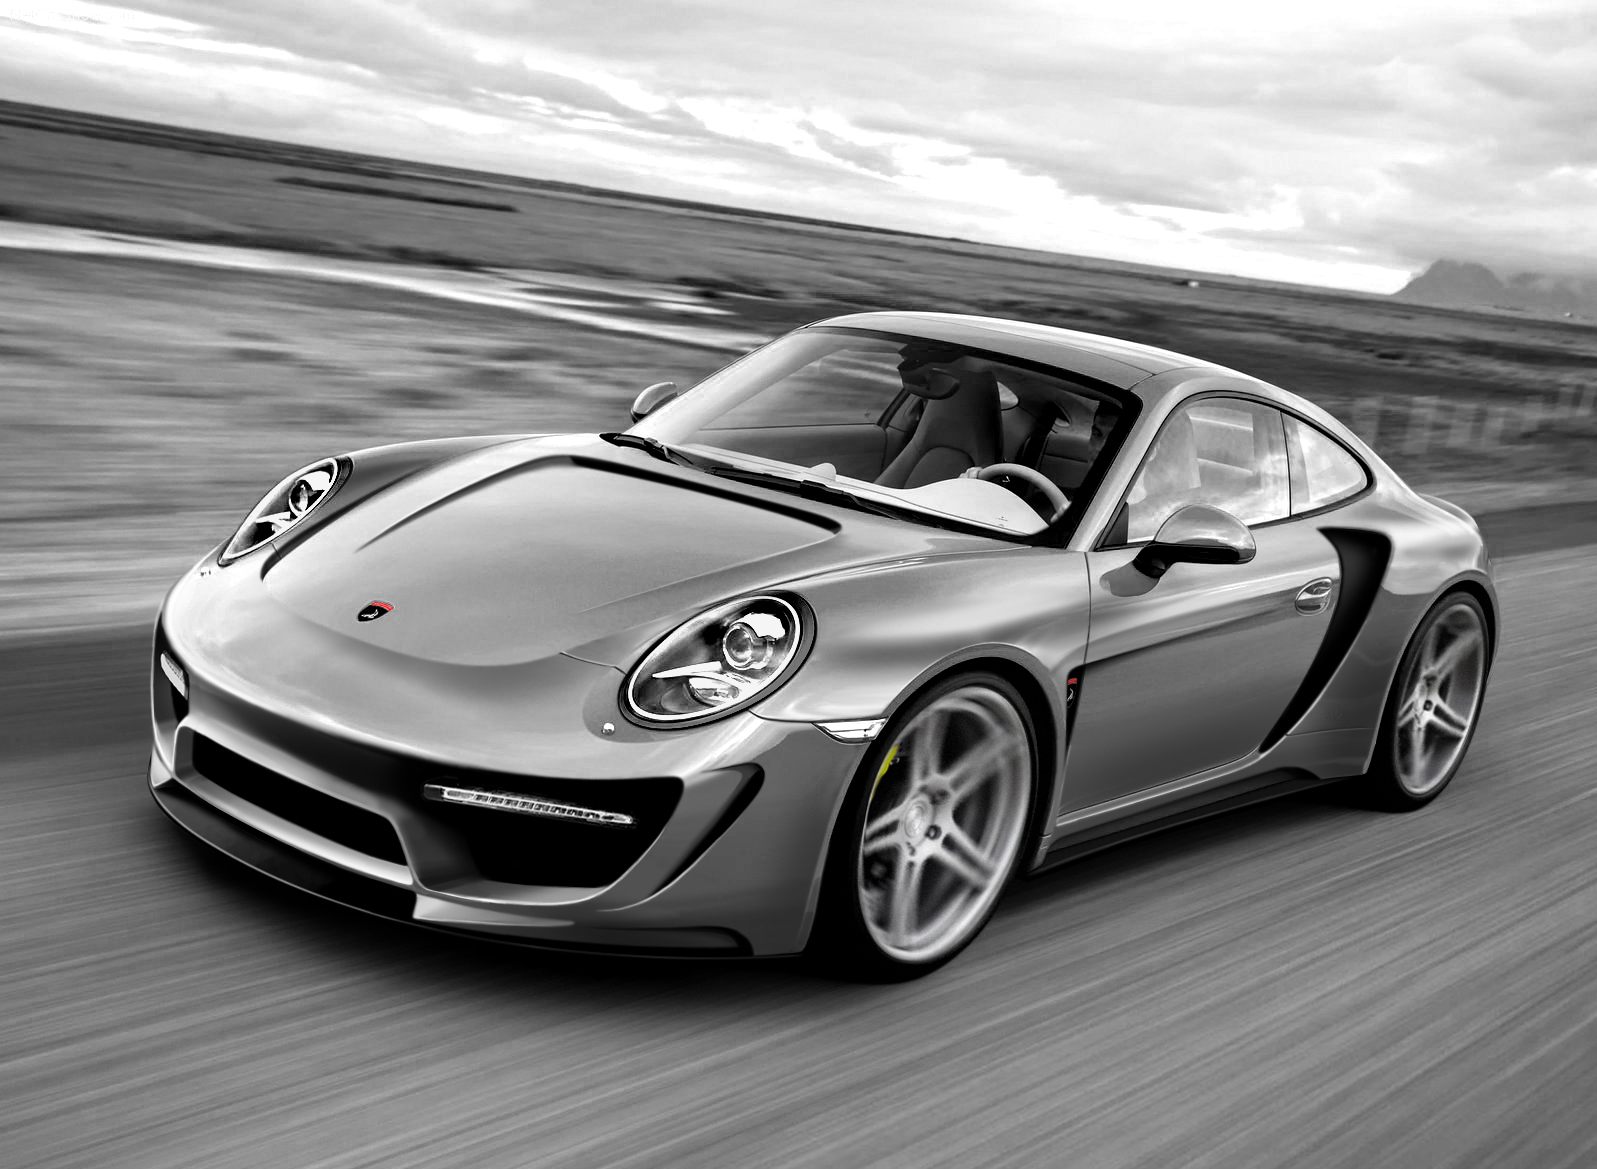 New Porsche 911 Porsche 991 By Top Car Tuning Porsche Tuning